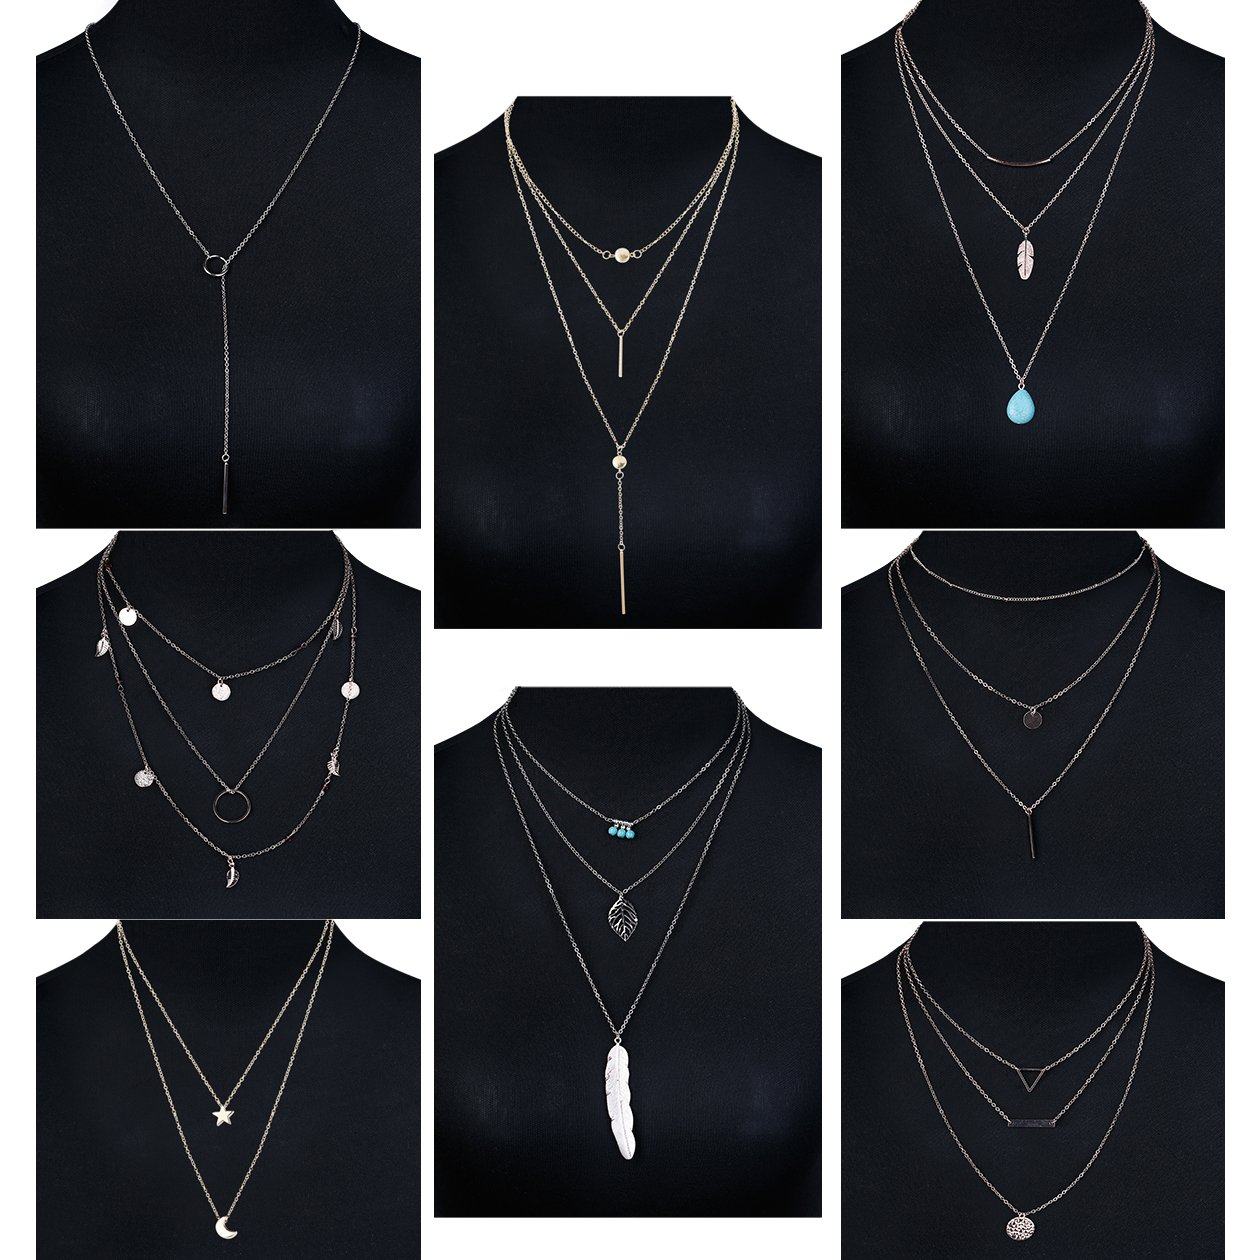 Jstyle 8 Pcs Simple Layered Choker Necklace For Women Girls Sexy Long Chain Y Necklace Bar Feather Pendent Necklace